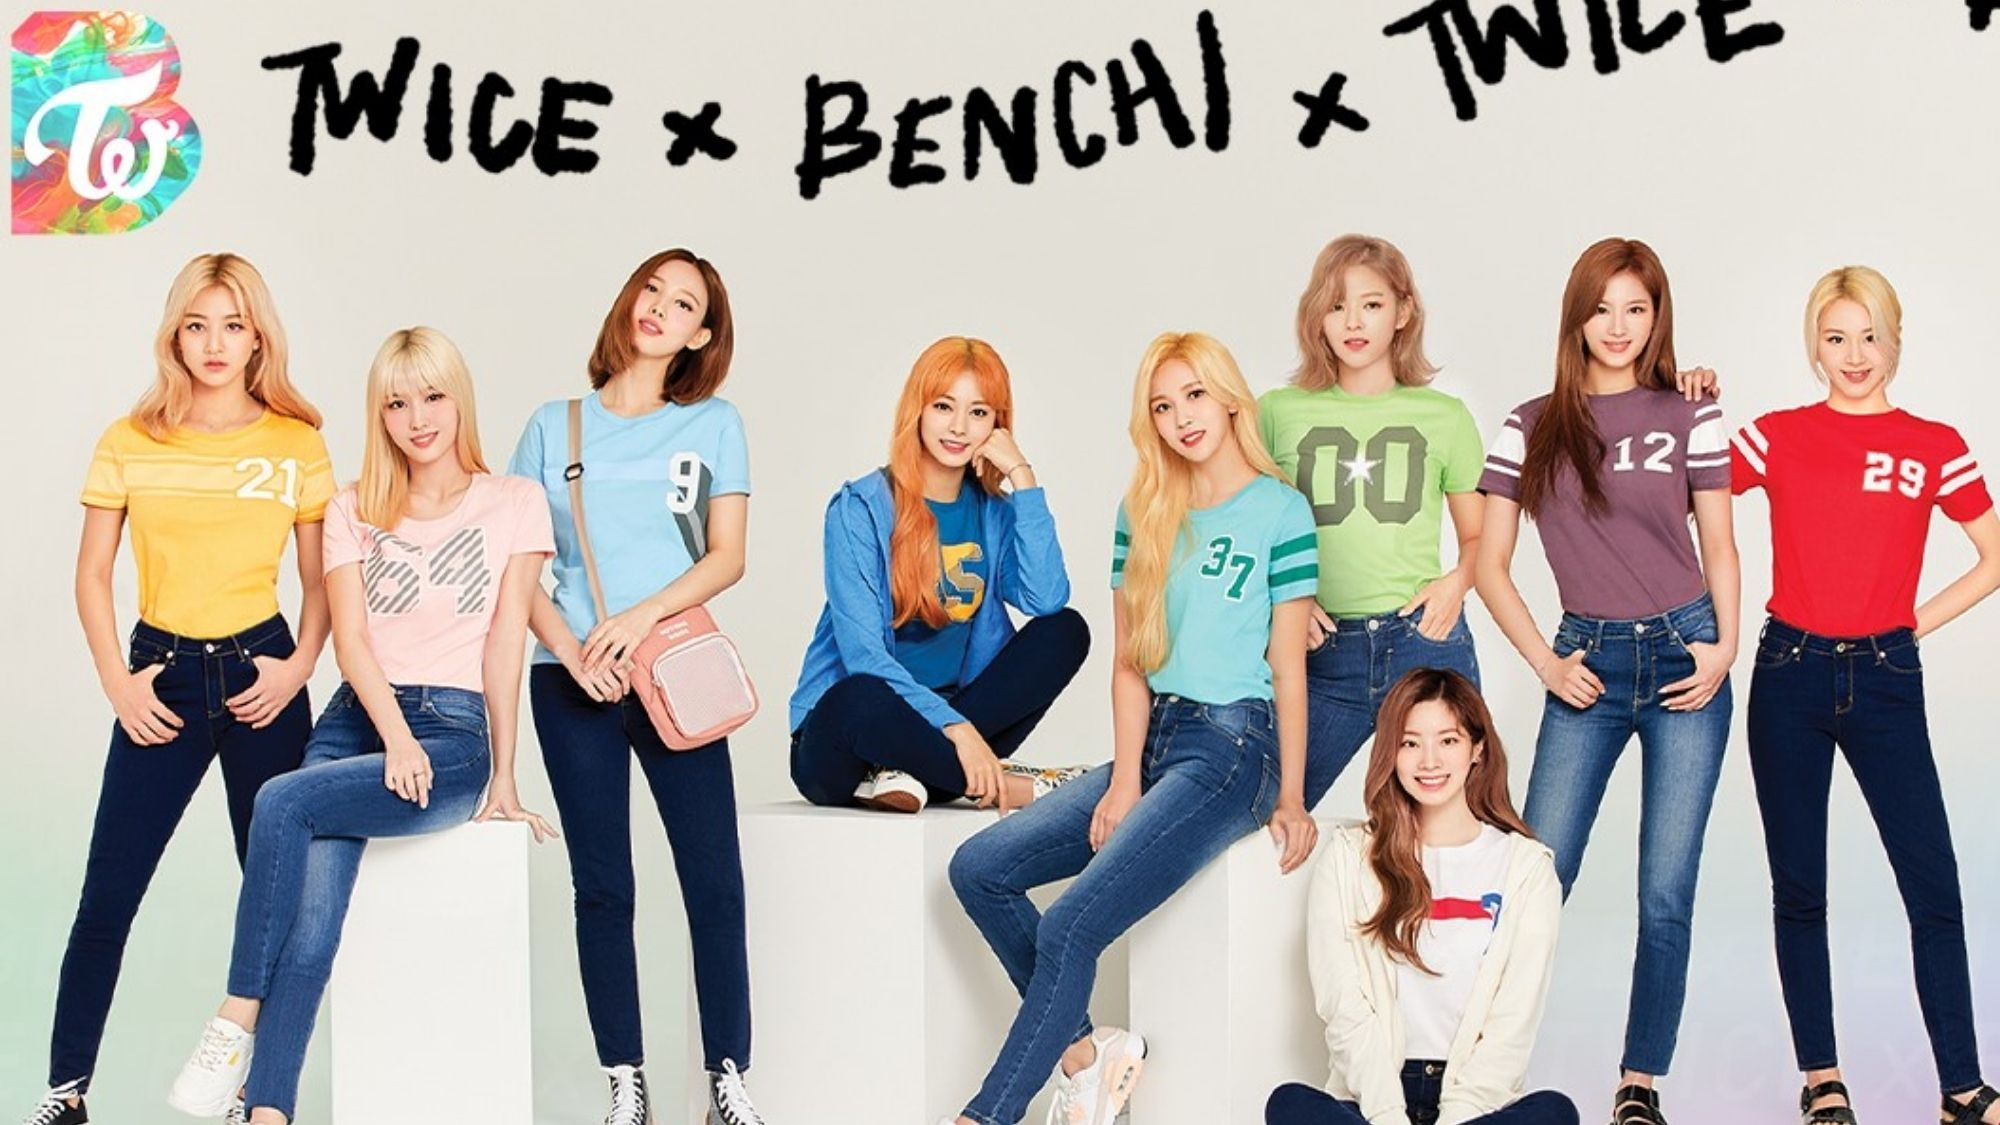 KUMUstahan with TWICE brought to the Filipino fans by BENCH